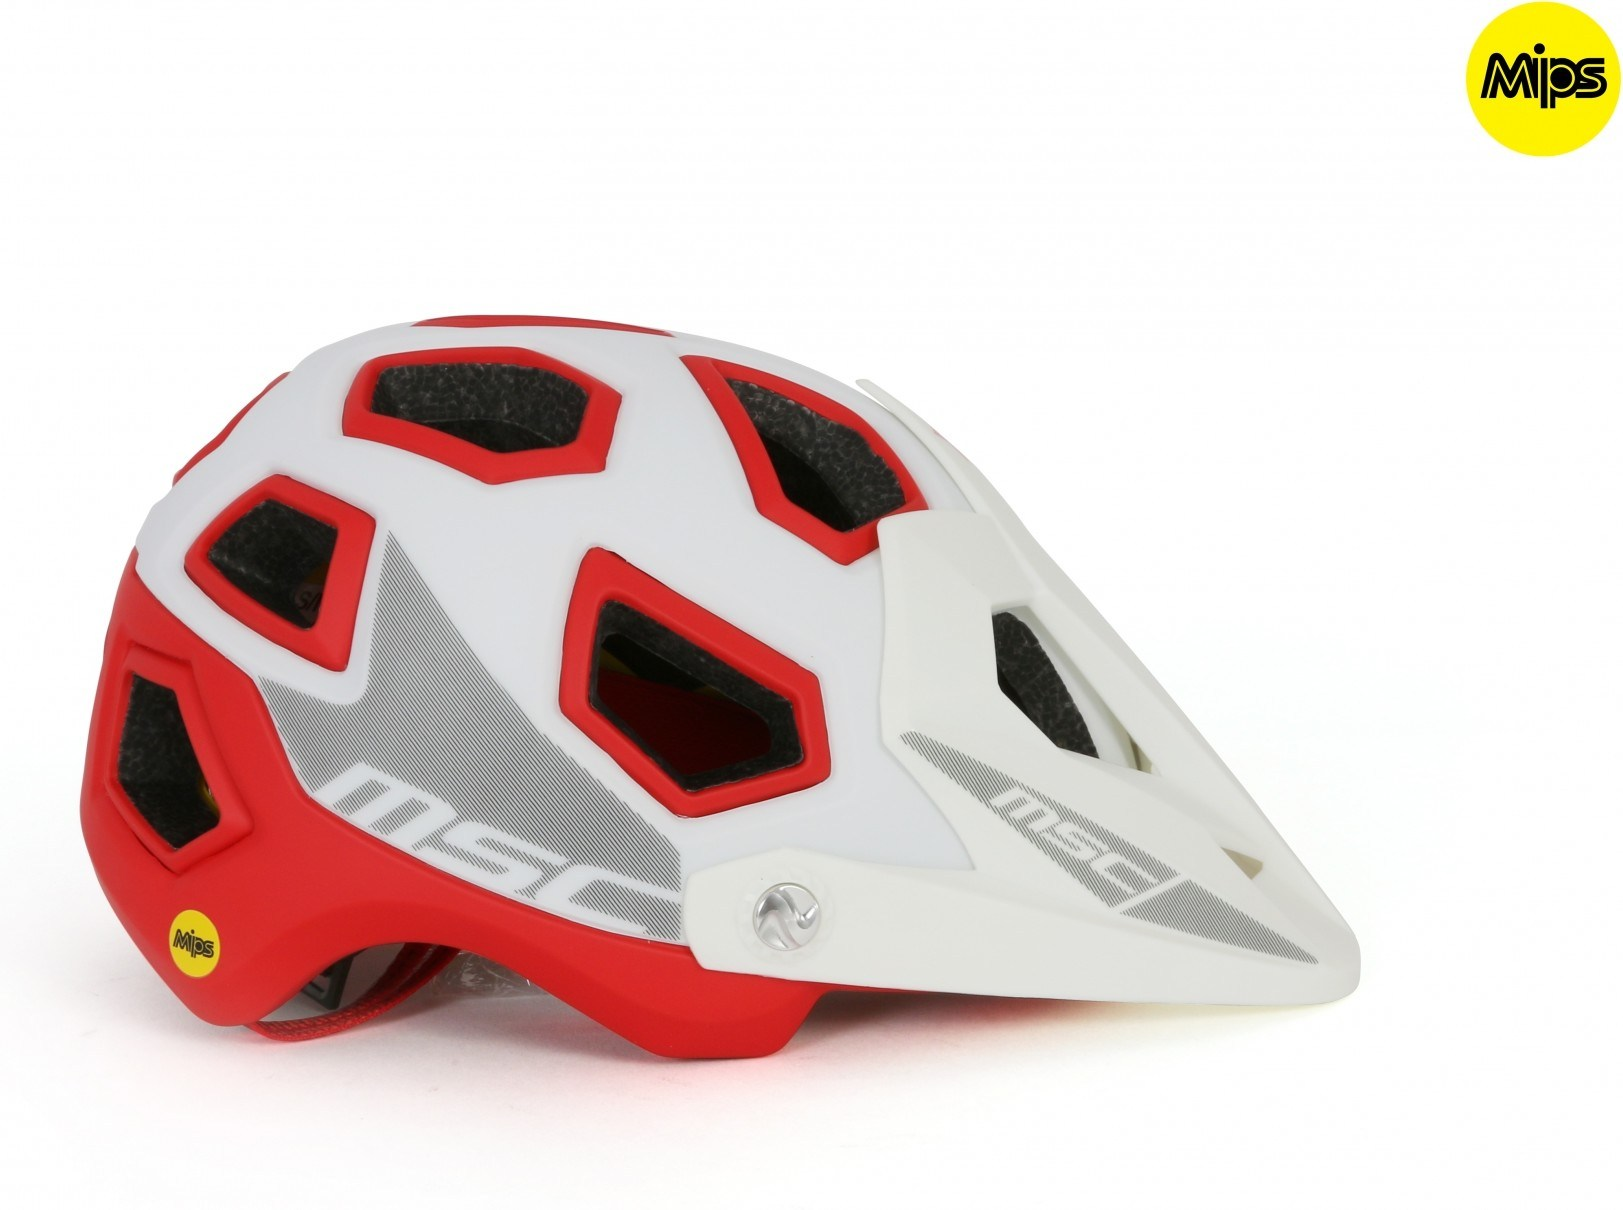 Msc Casco Mips Enduro Blanco / Rojo